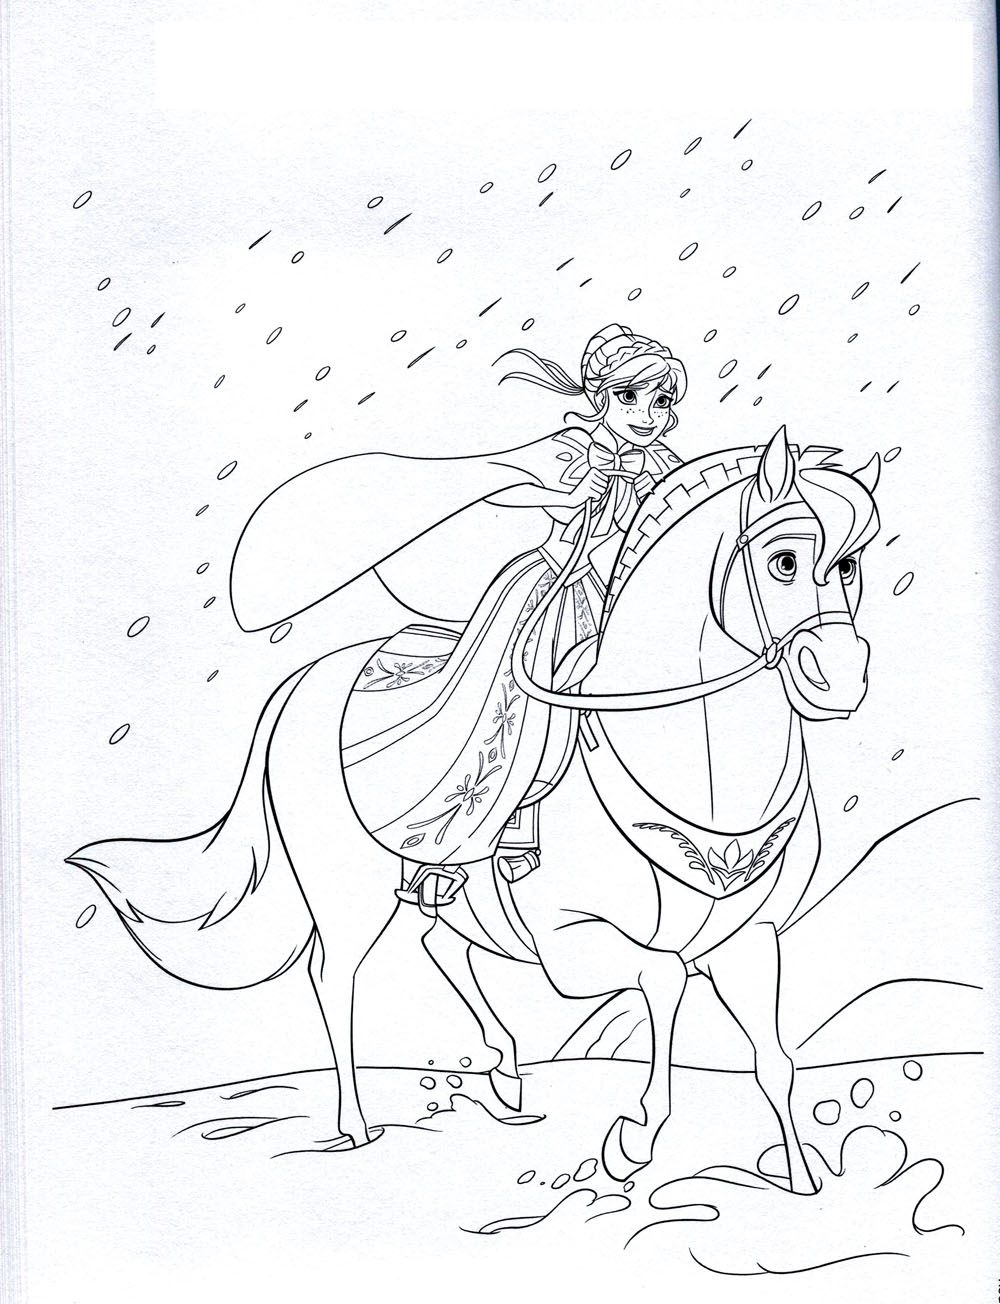 coloriage reine des neiges sur hugo l'escargot